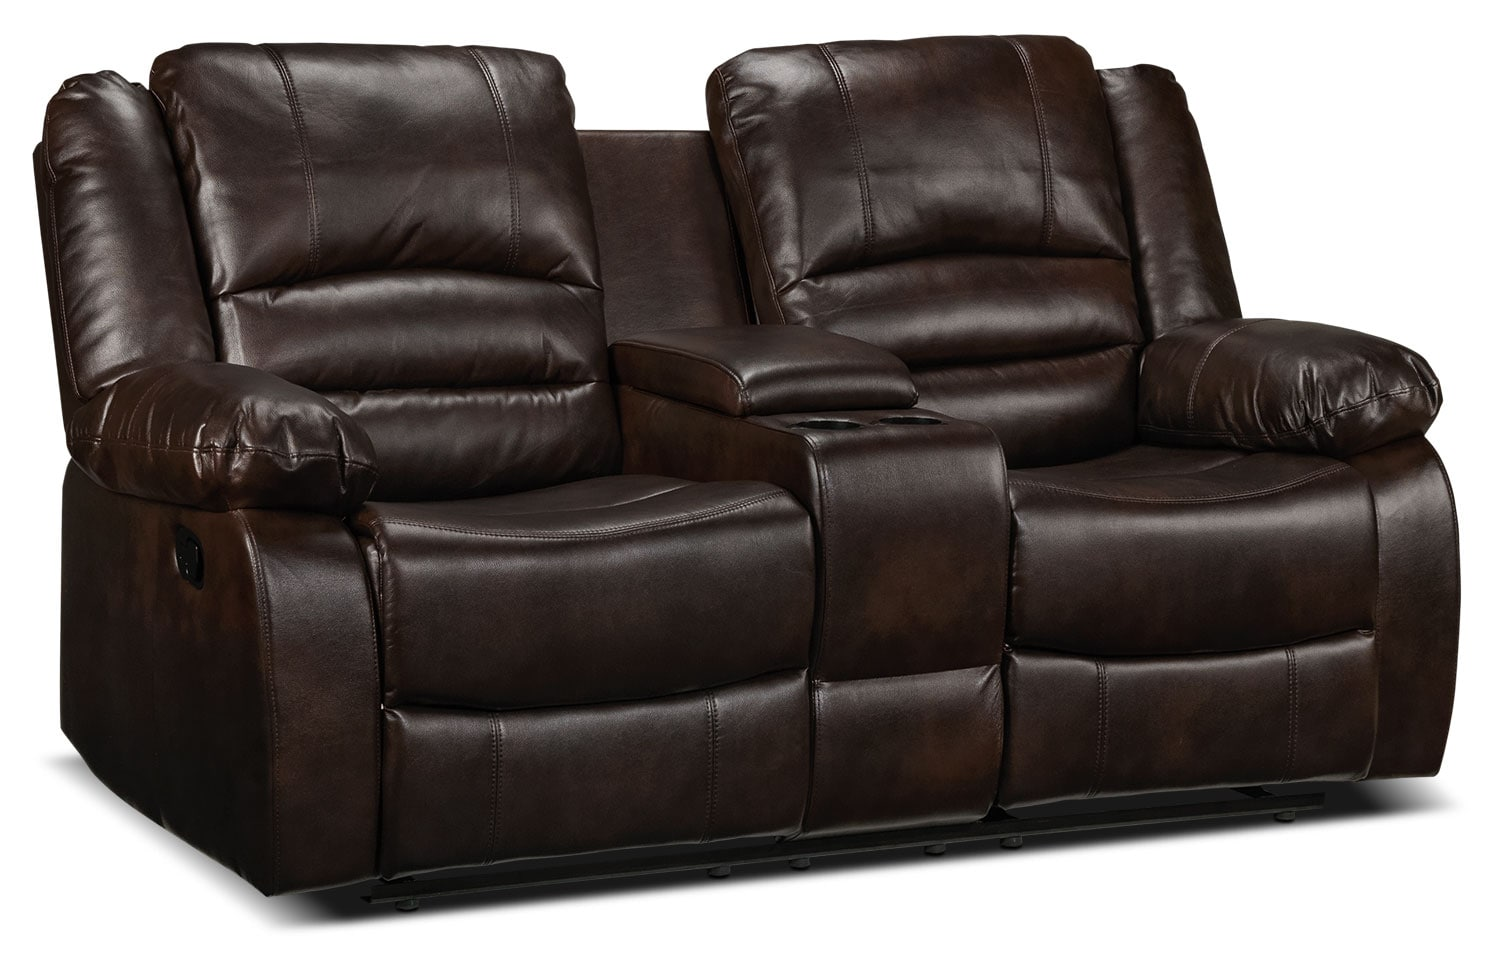 Brooksdale Reclining Loveseat w/ Console - Deep Brown